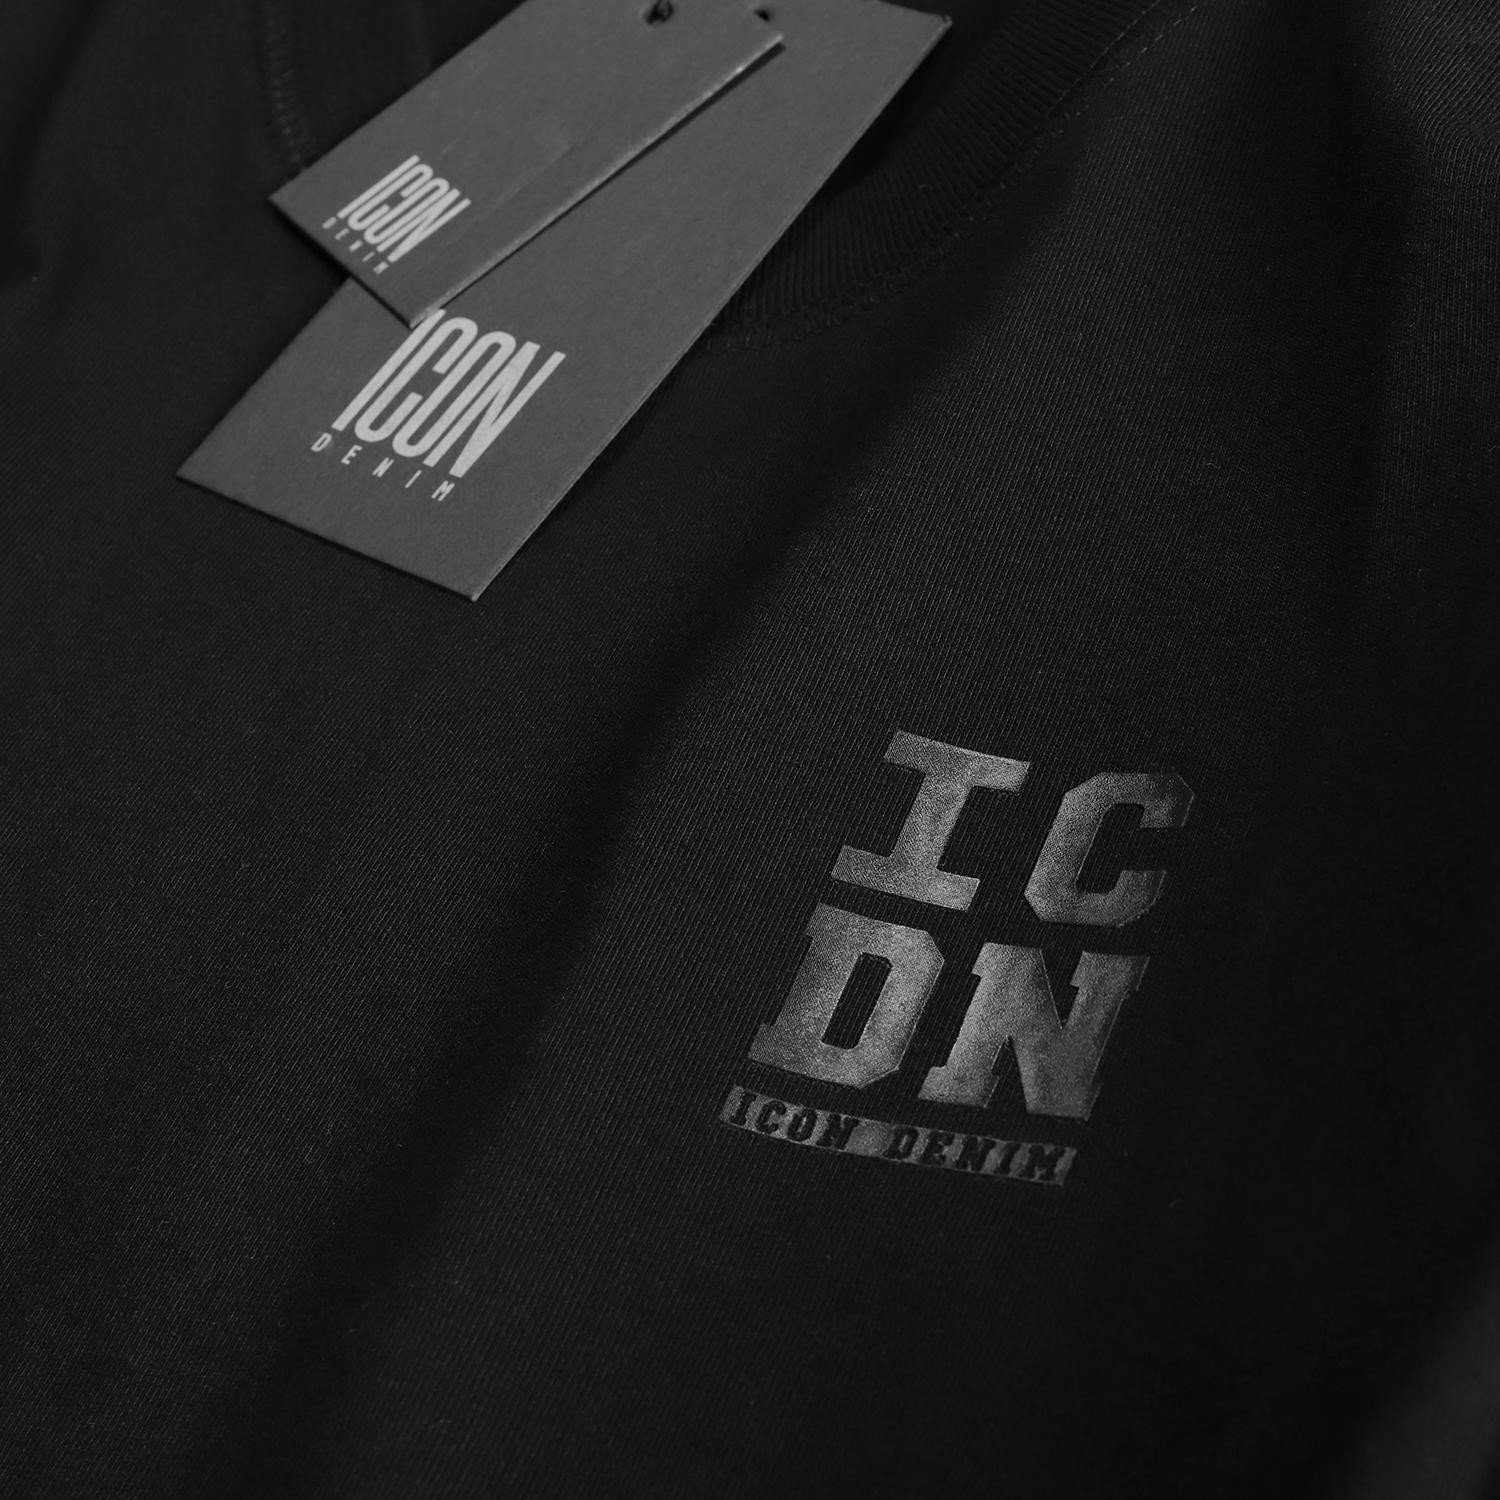 Áo thun ICON DENIM w logo